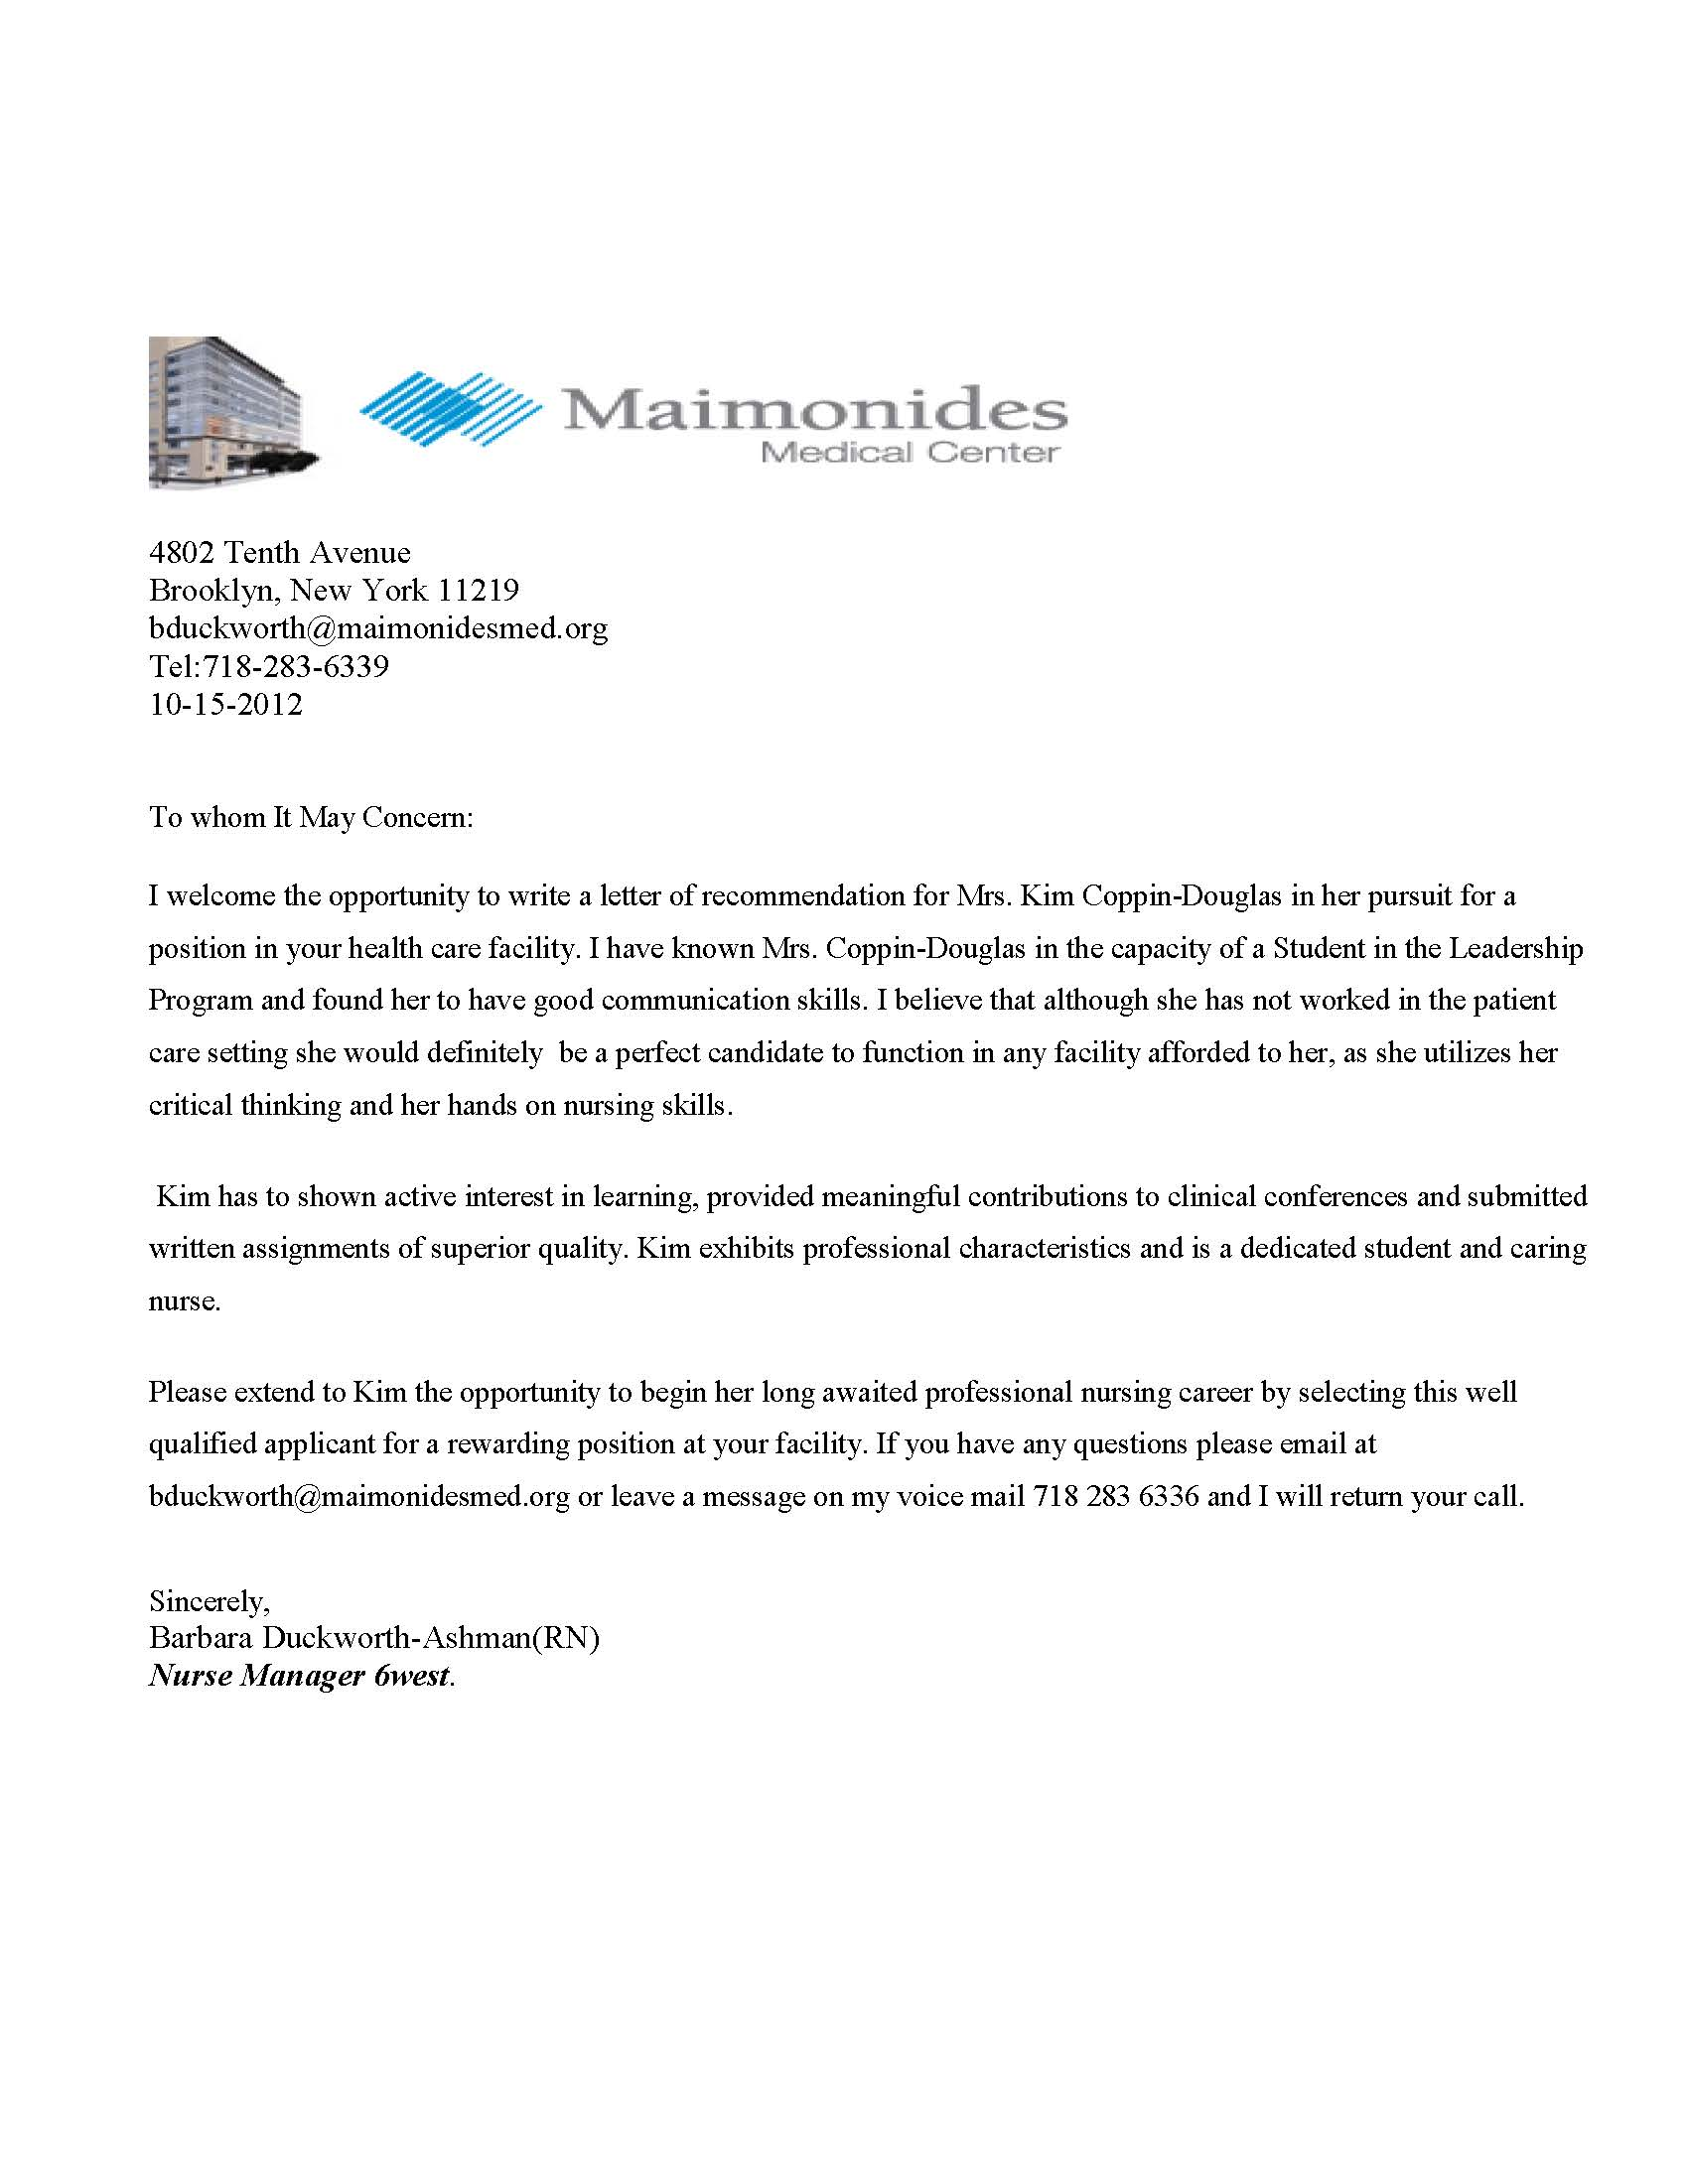 cover letter for shadowing a doctor - maimonides medical center kim coppin douglas 39 s eportfolio